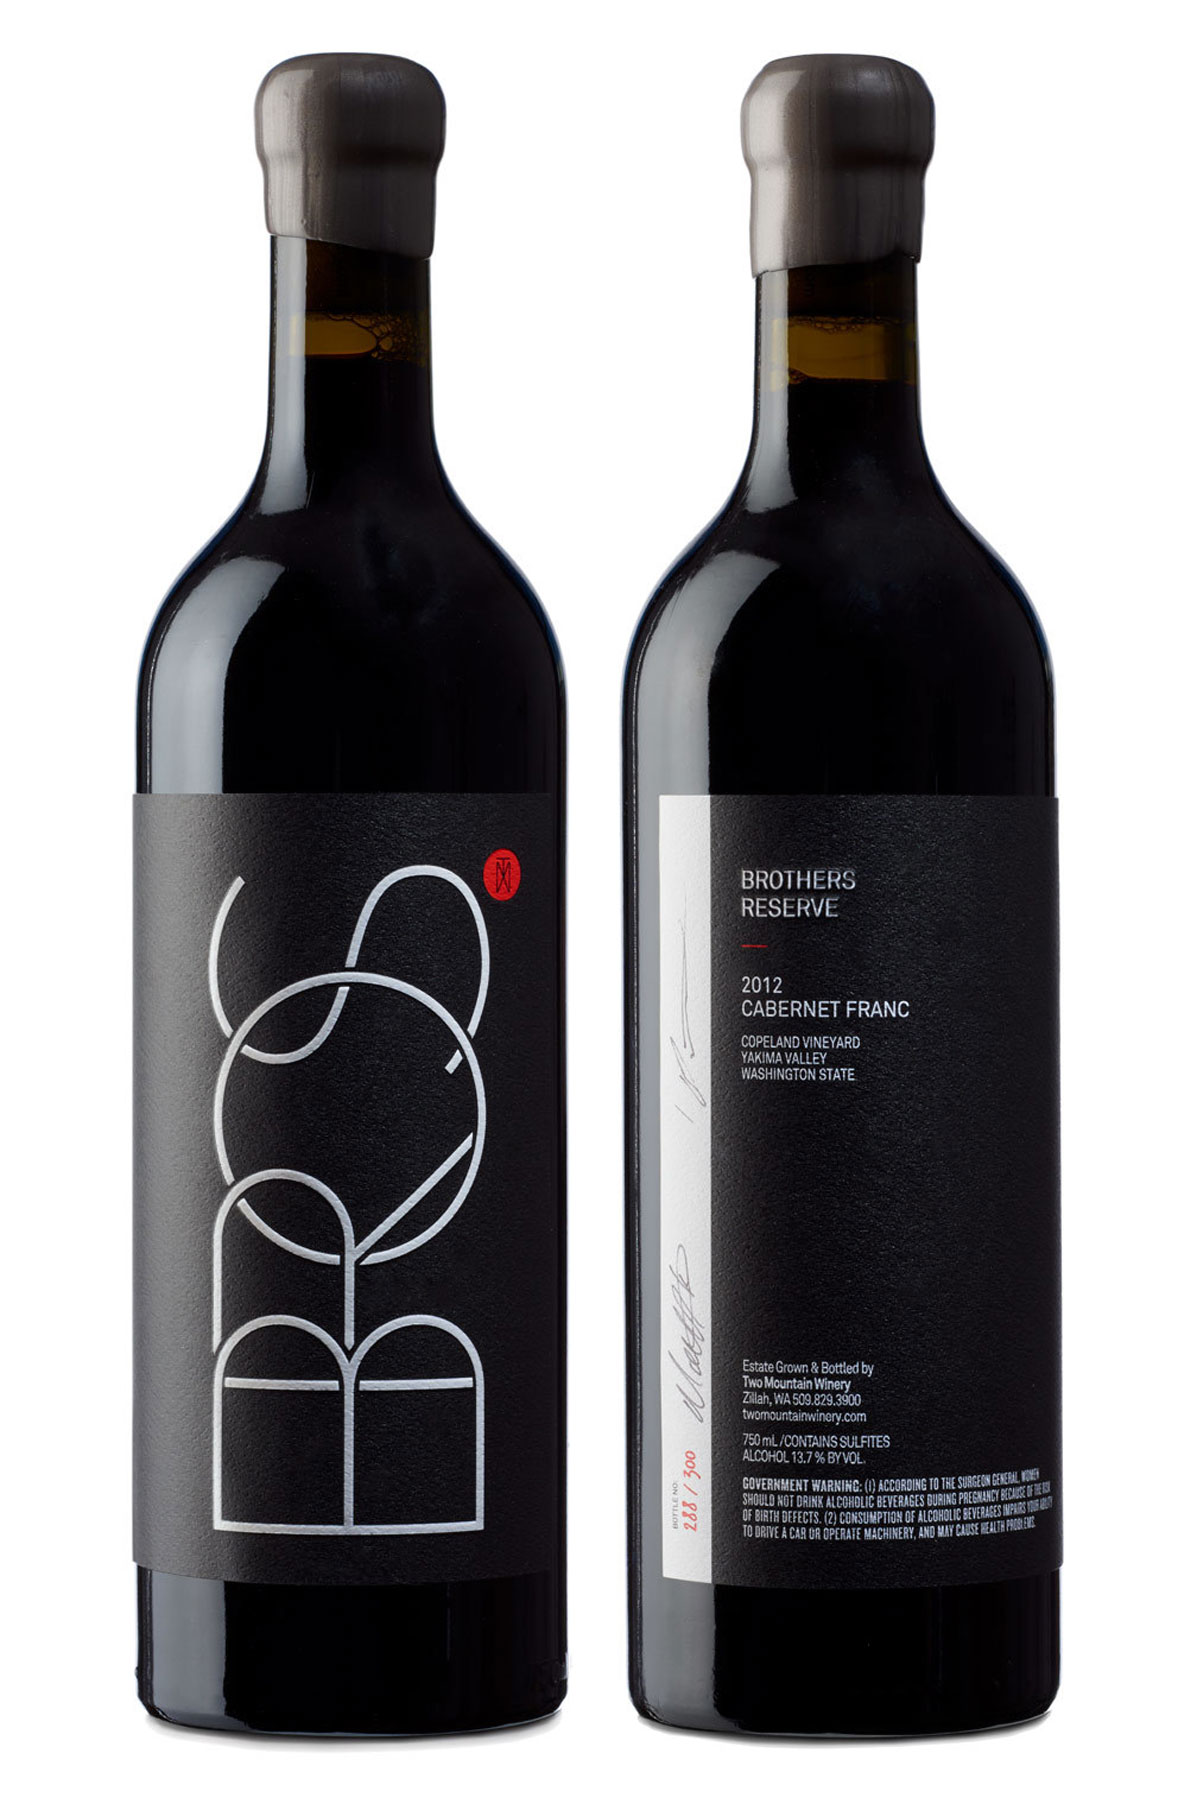 Two Mountain Bros wine bottles, front and back